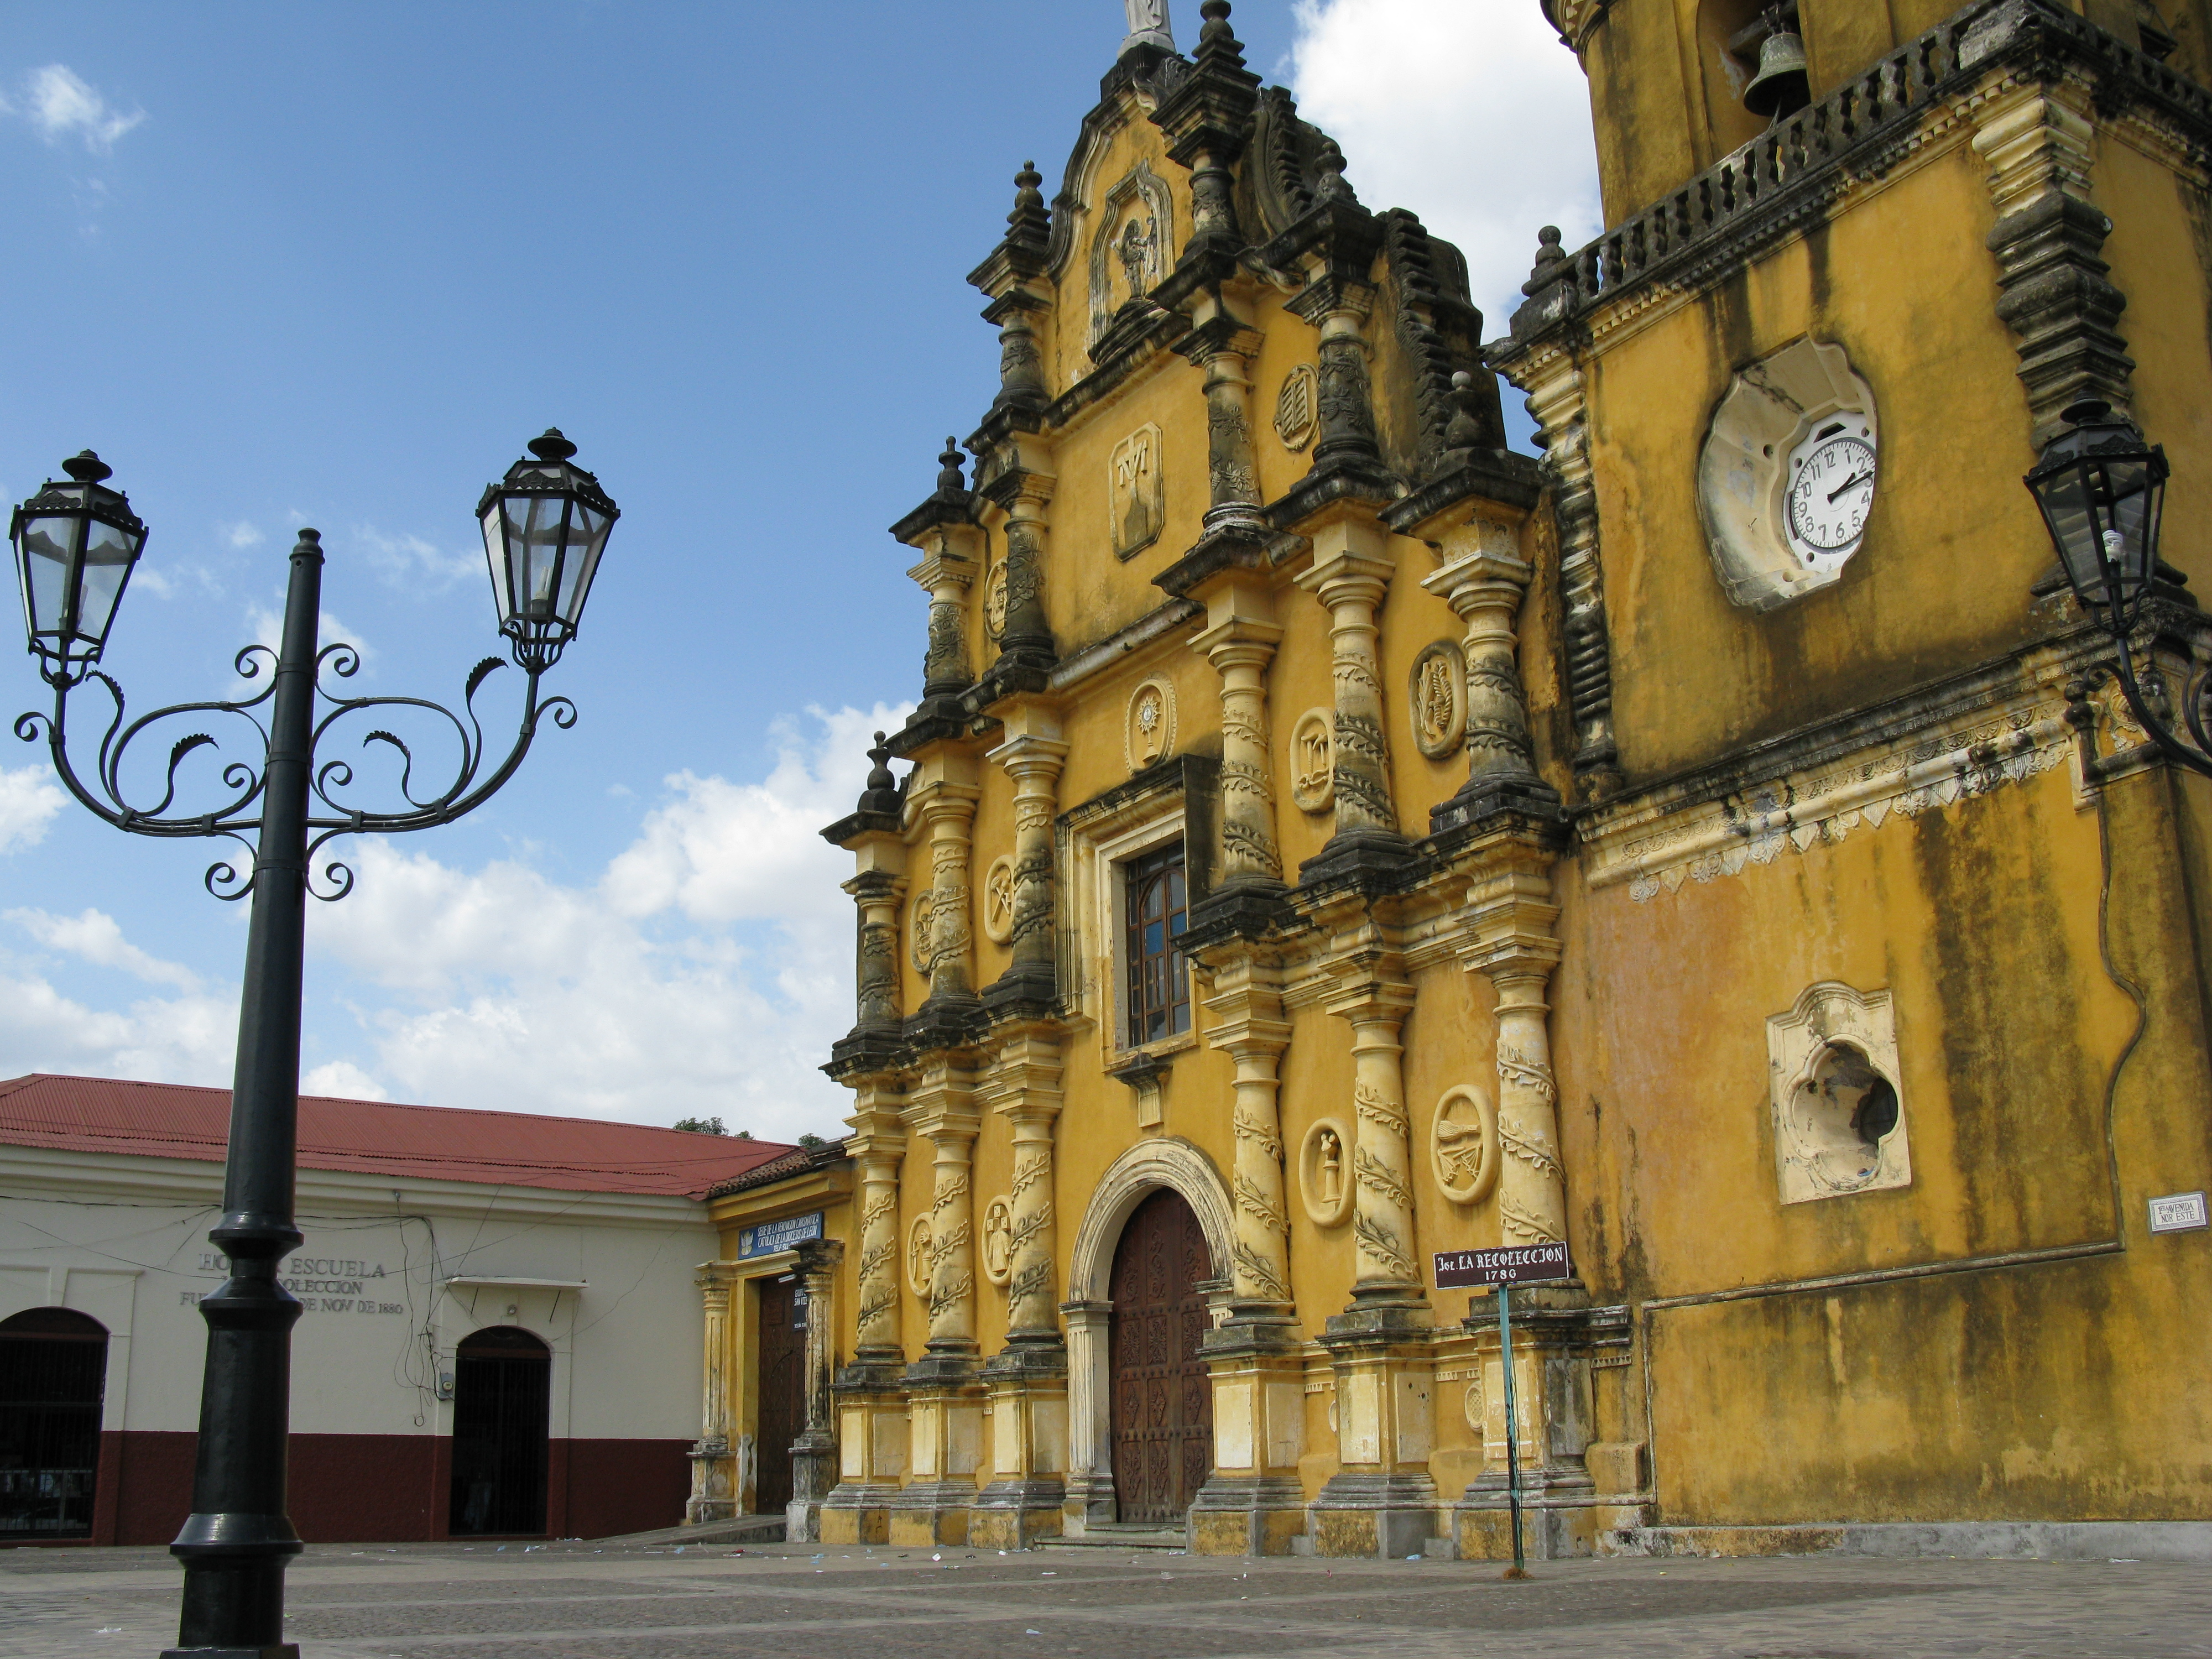 León's La Recolección church has been a landmark since 1780